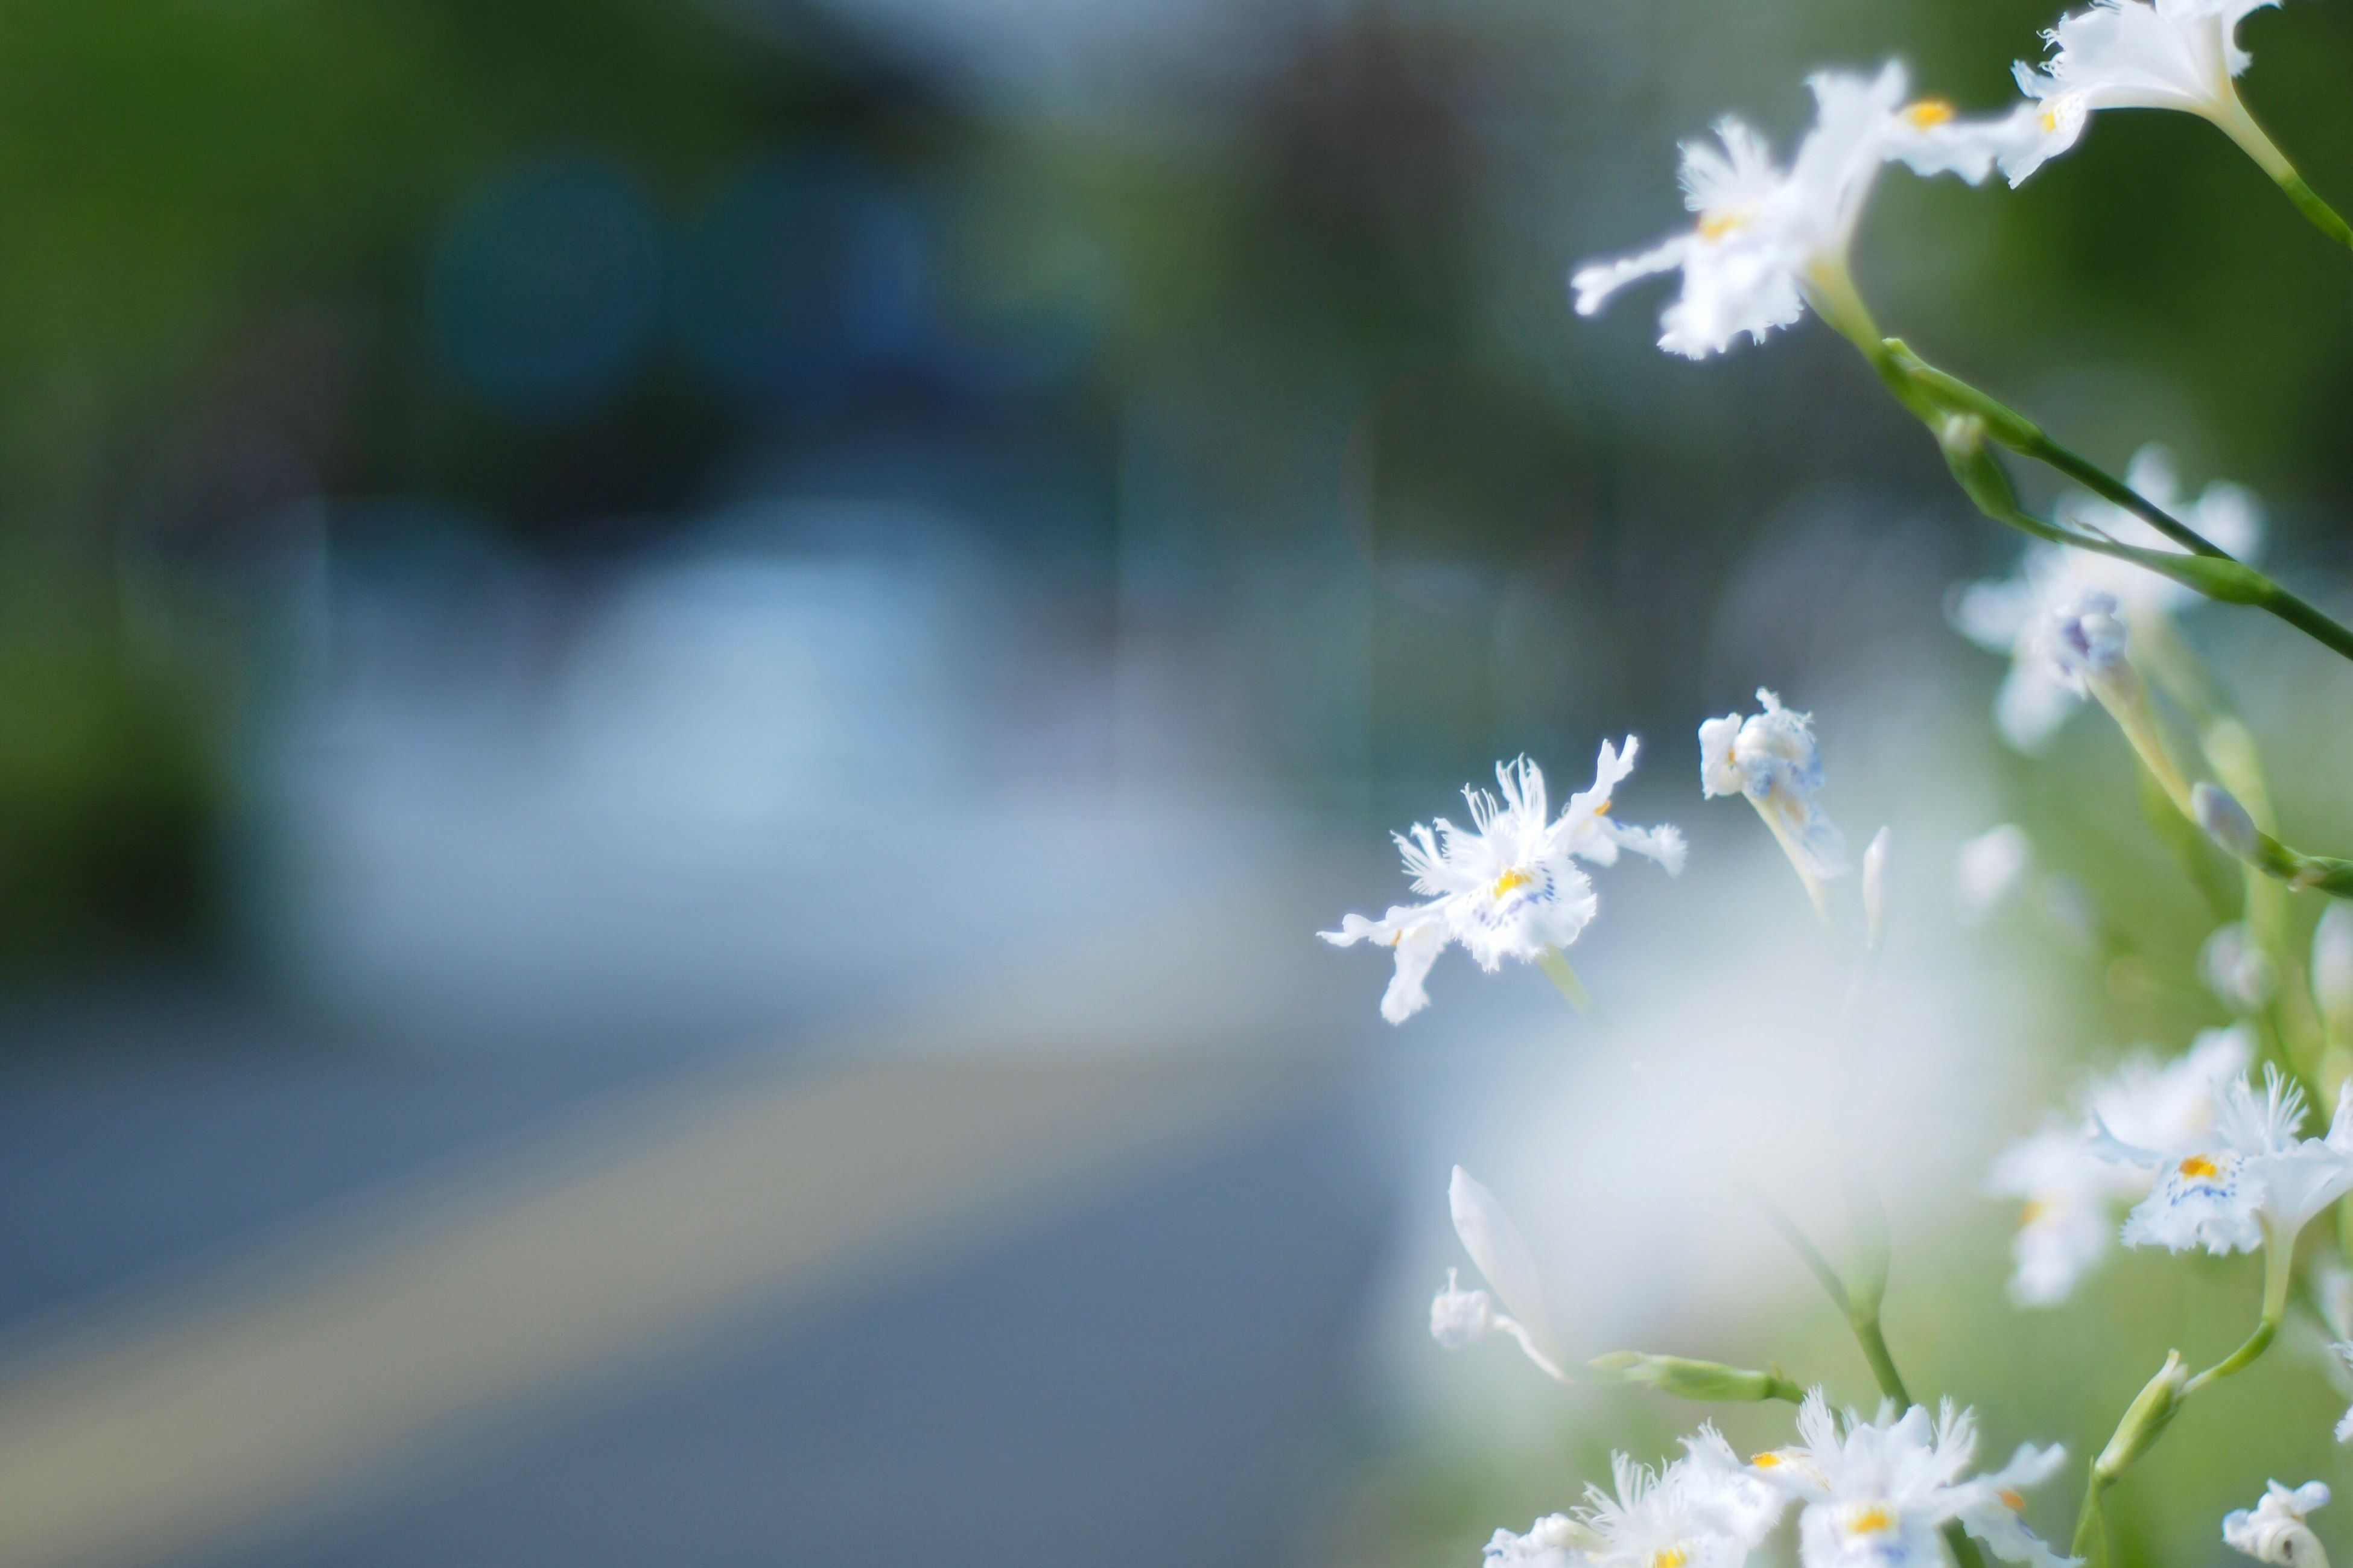 flower, nature, growth, fragility, freshness, white color, beauty in nature, petal, close-up, no people, flower head, outdoors, day, plant, blooming